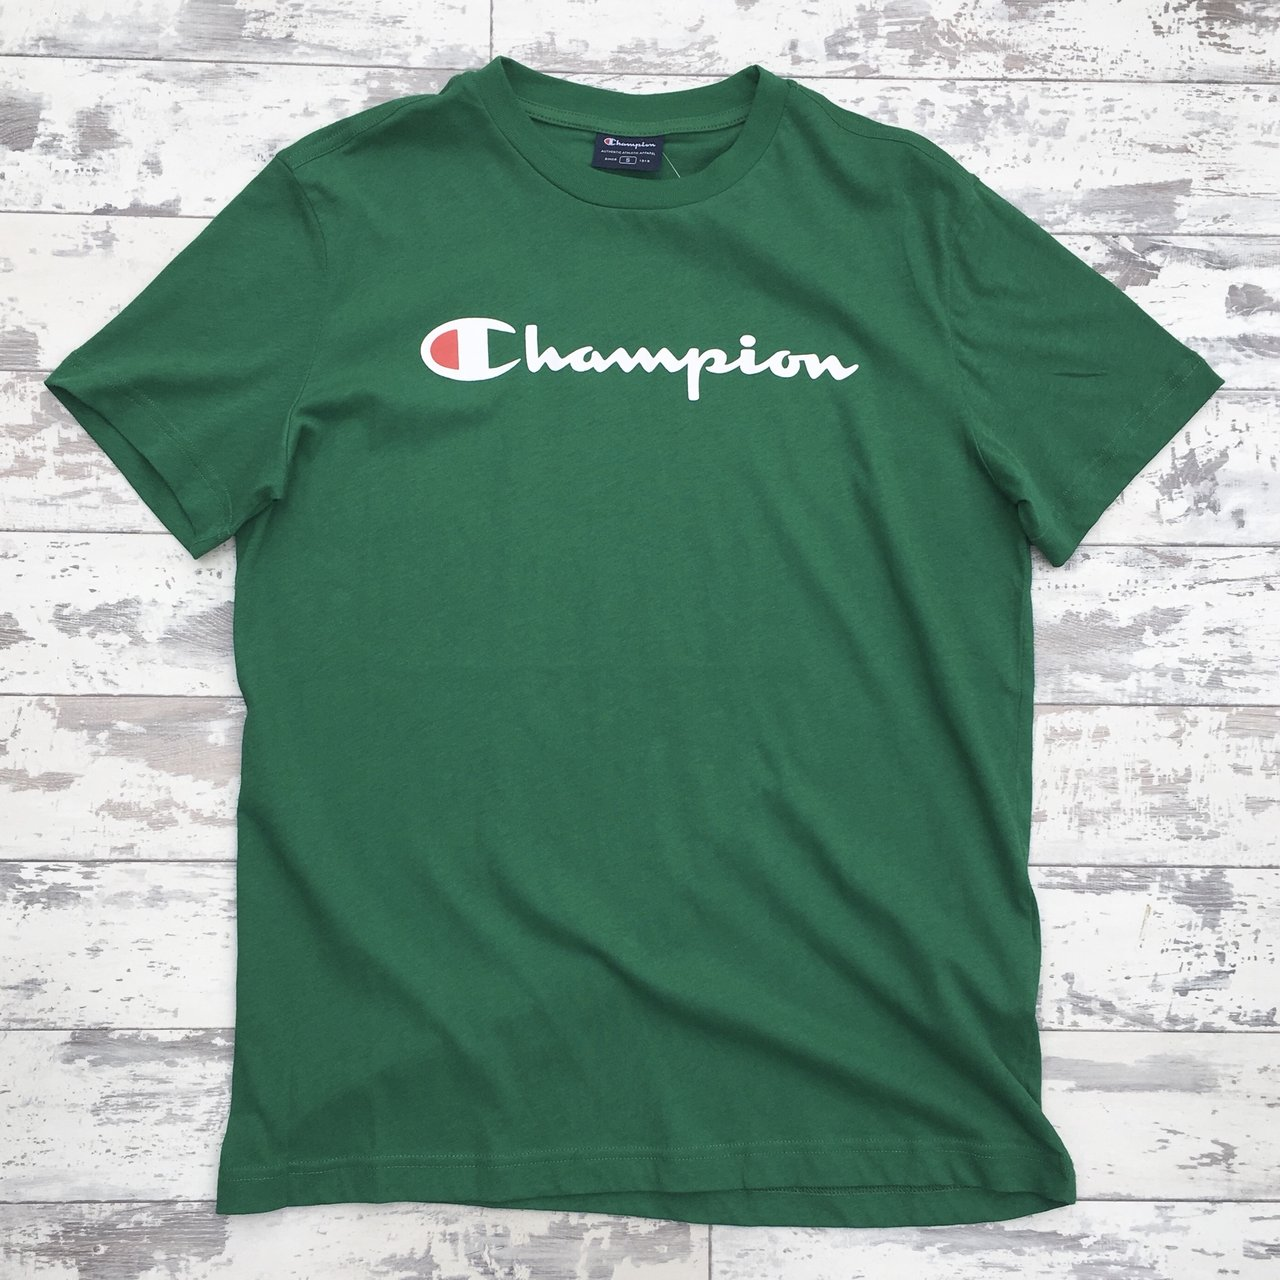 756440ec @systemf. last year. Nottingham, United Kingdom. Brand new green Champion  tee shirt